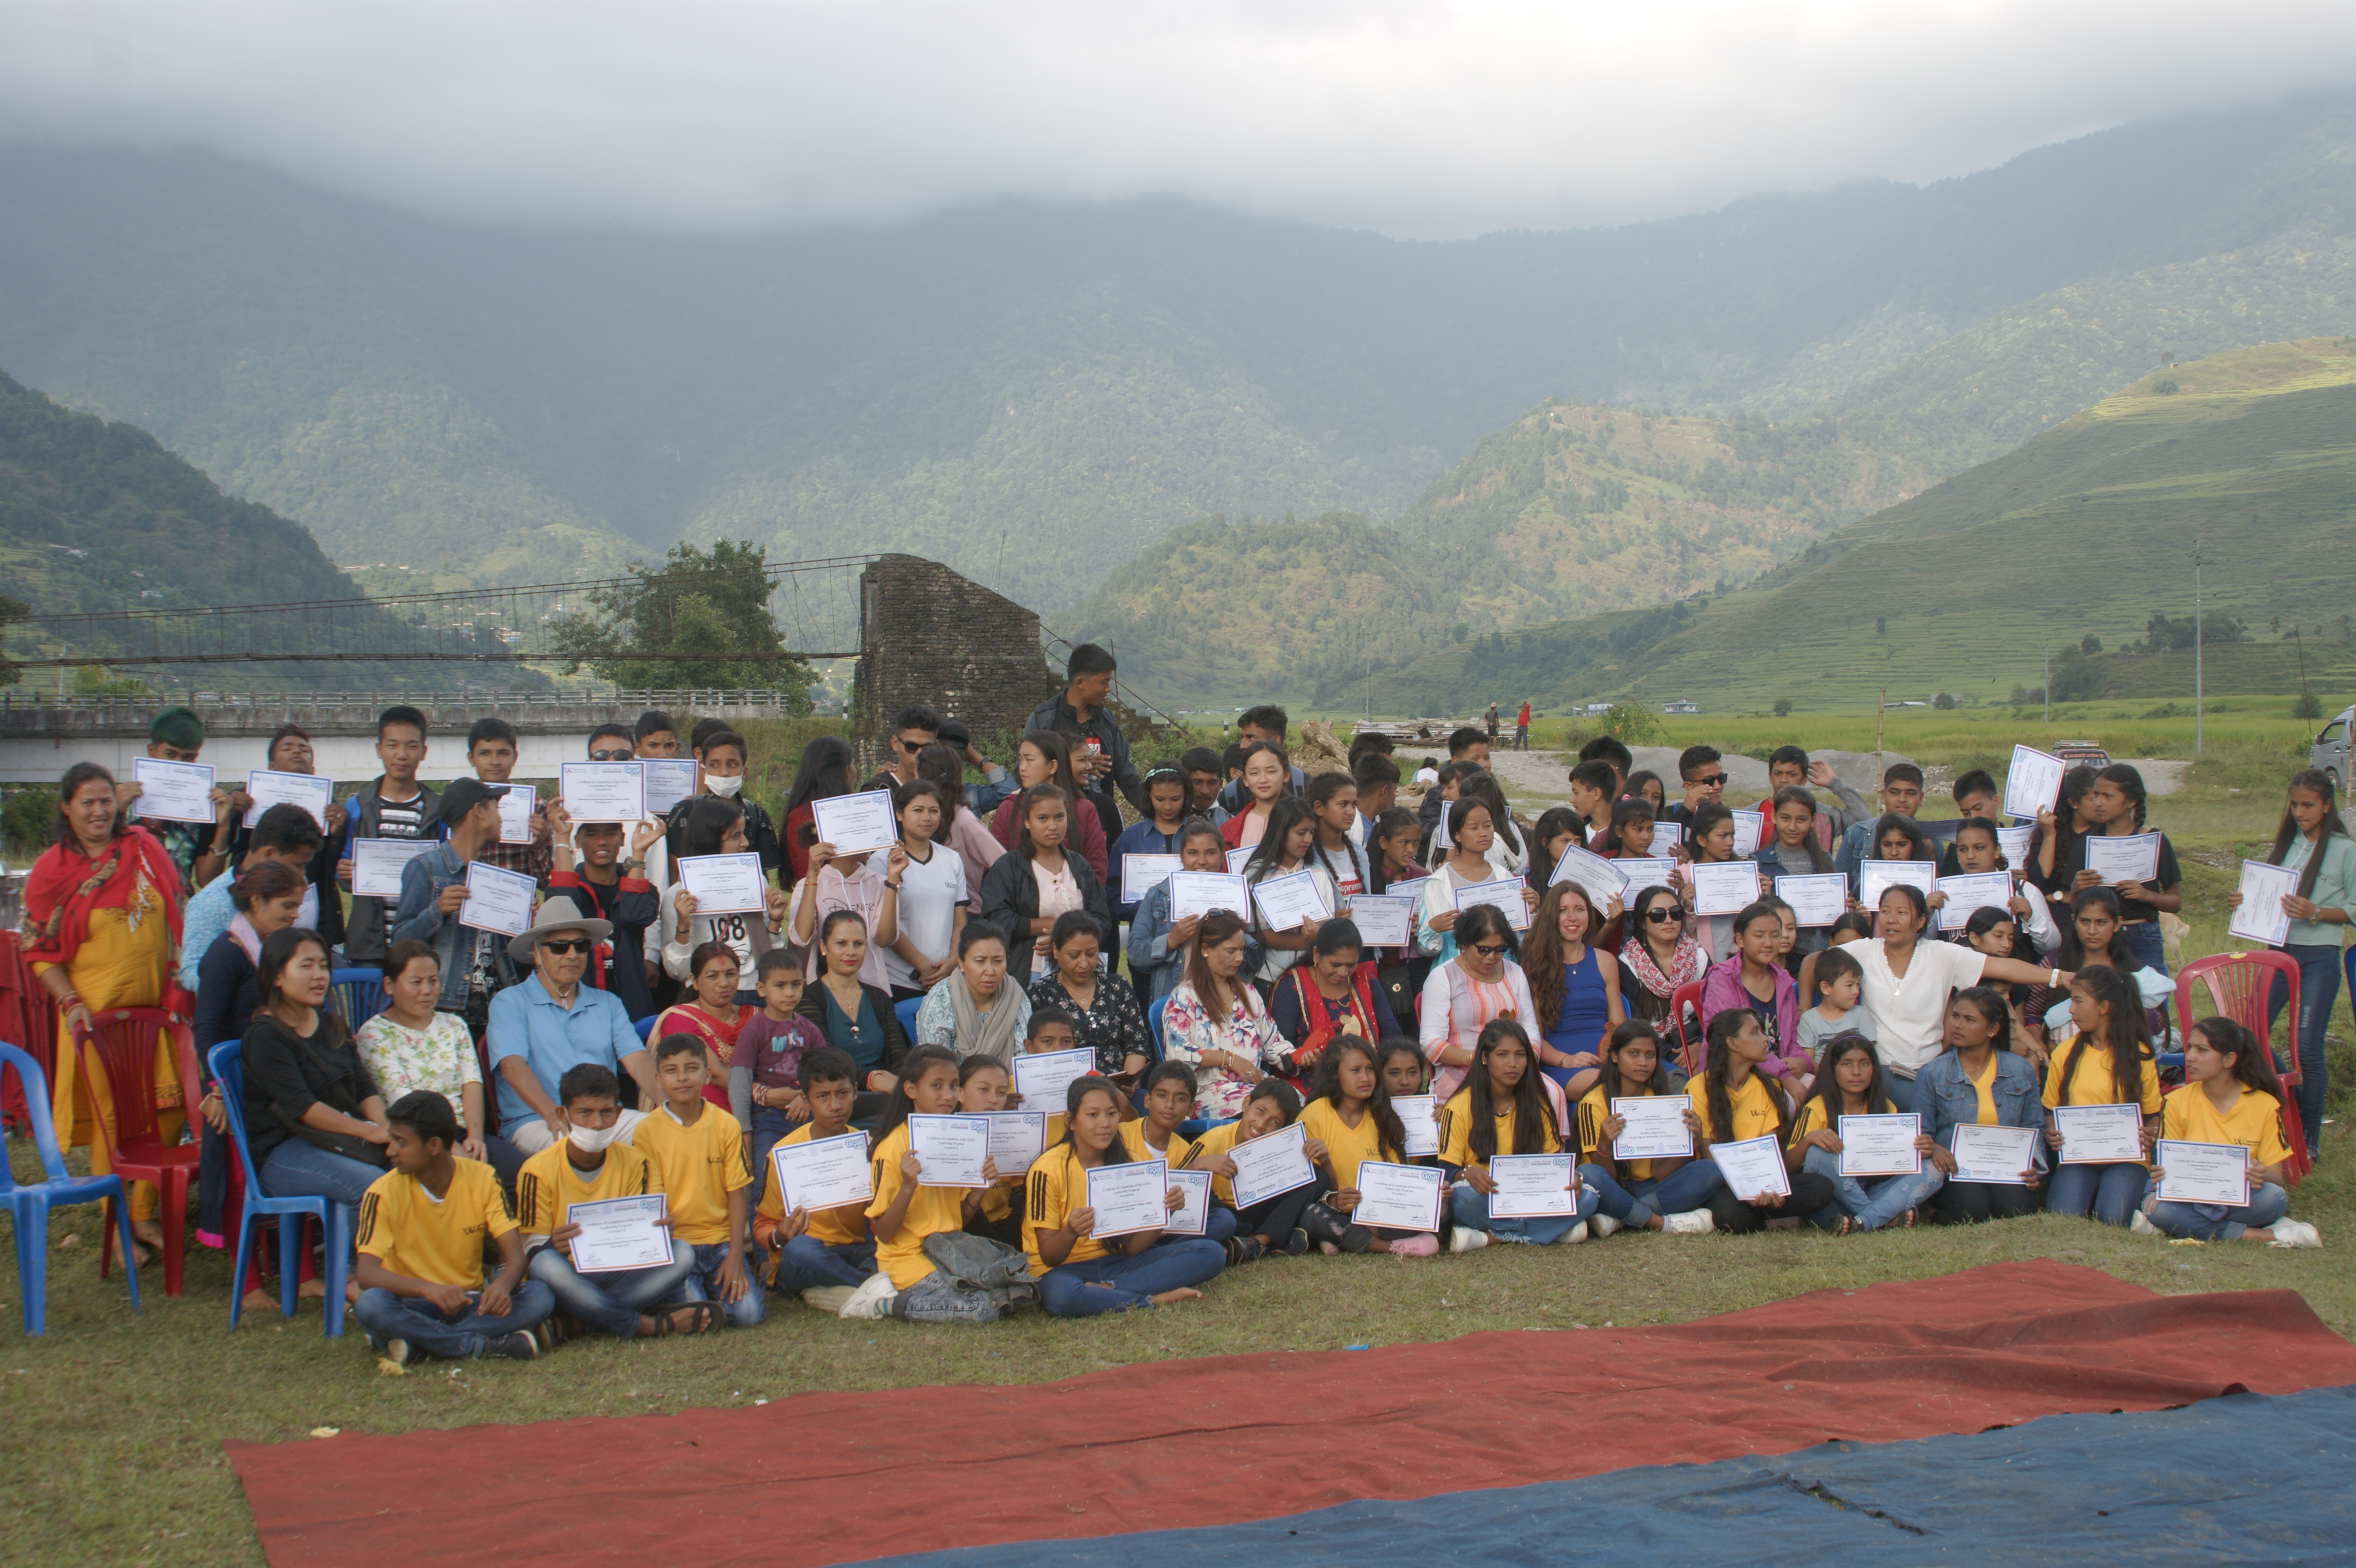 Rural women completed GOAL and GAA programs of Shree Rameshwori Secondary School